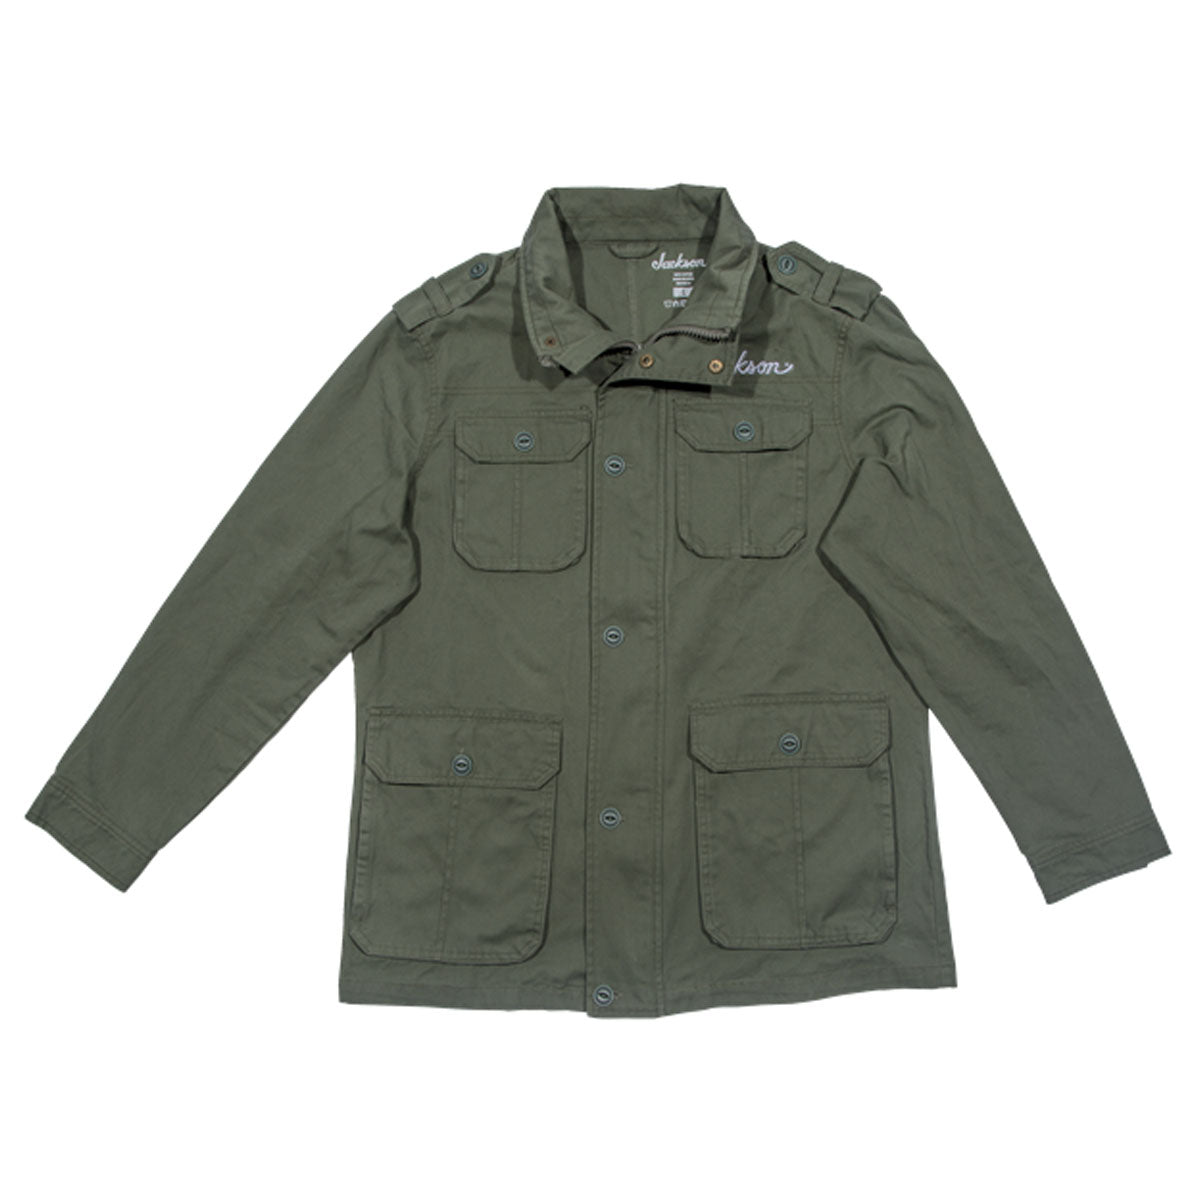 Jackson Army Jacket, Green, L Large - 2992769606